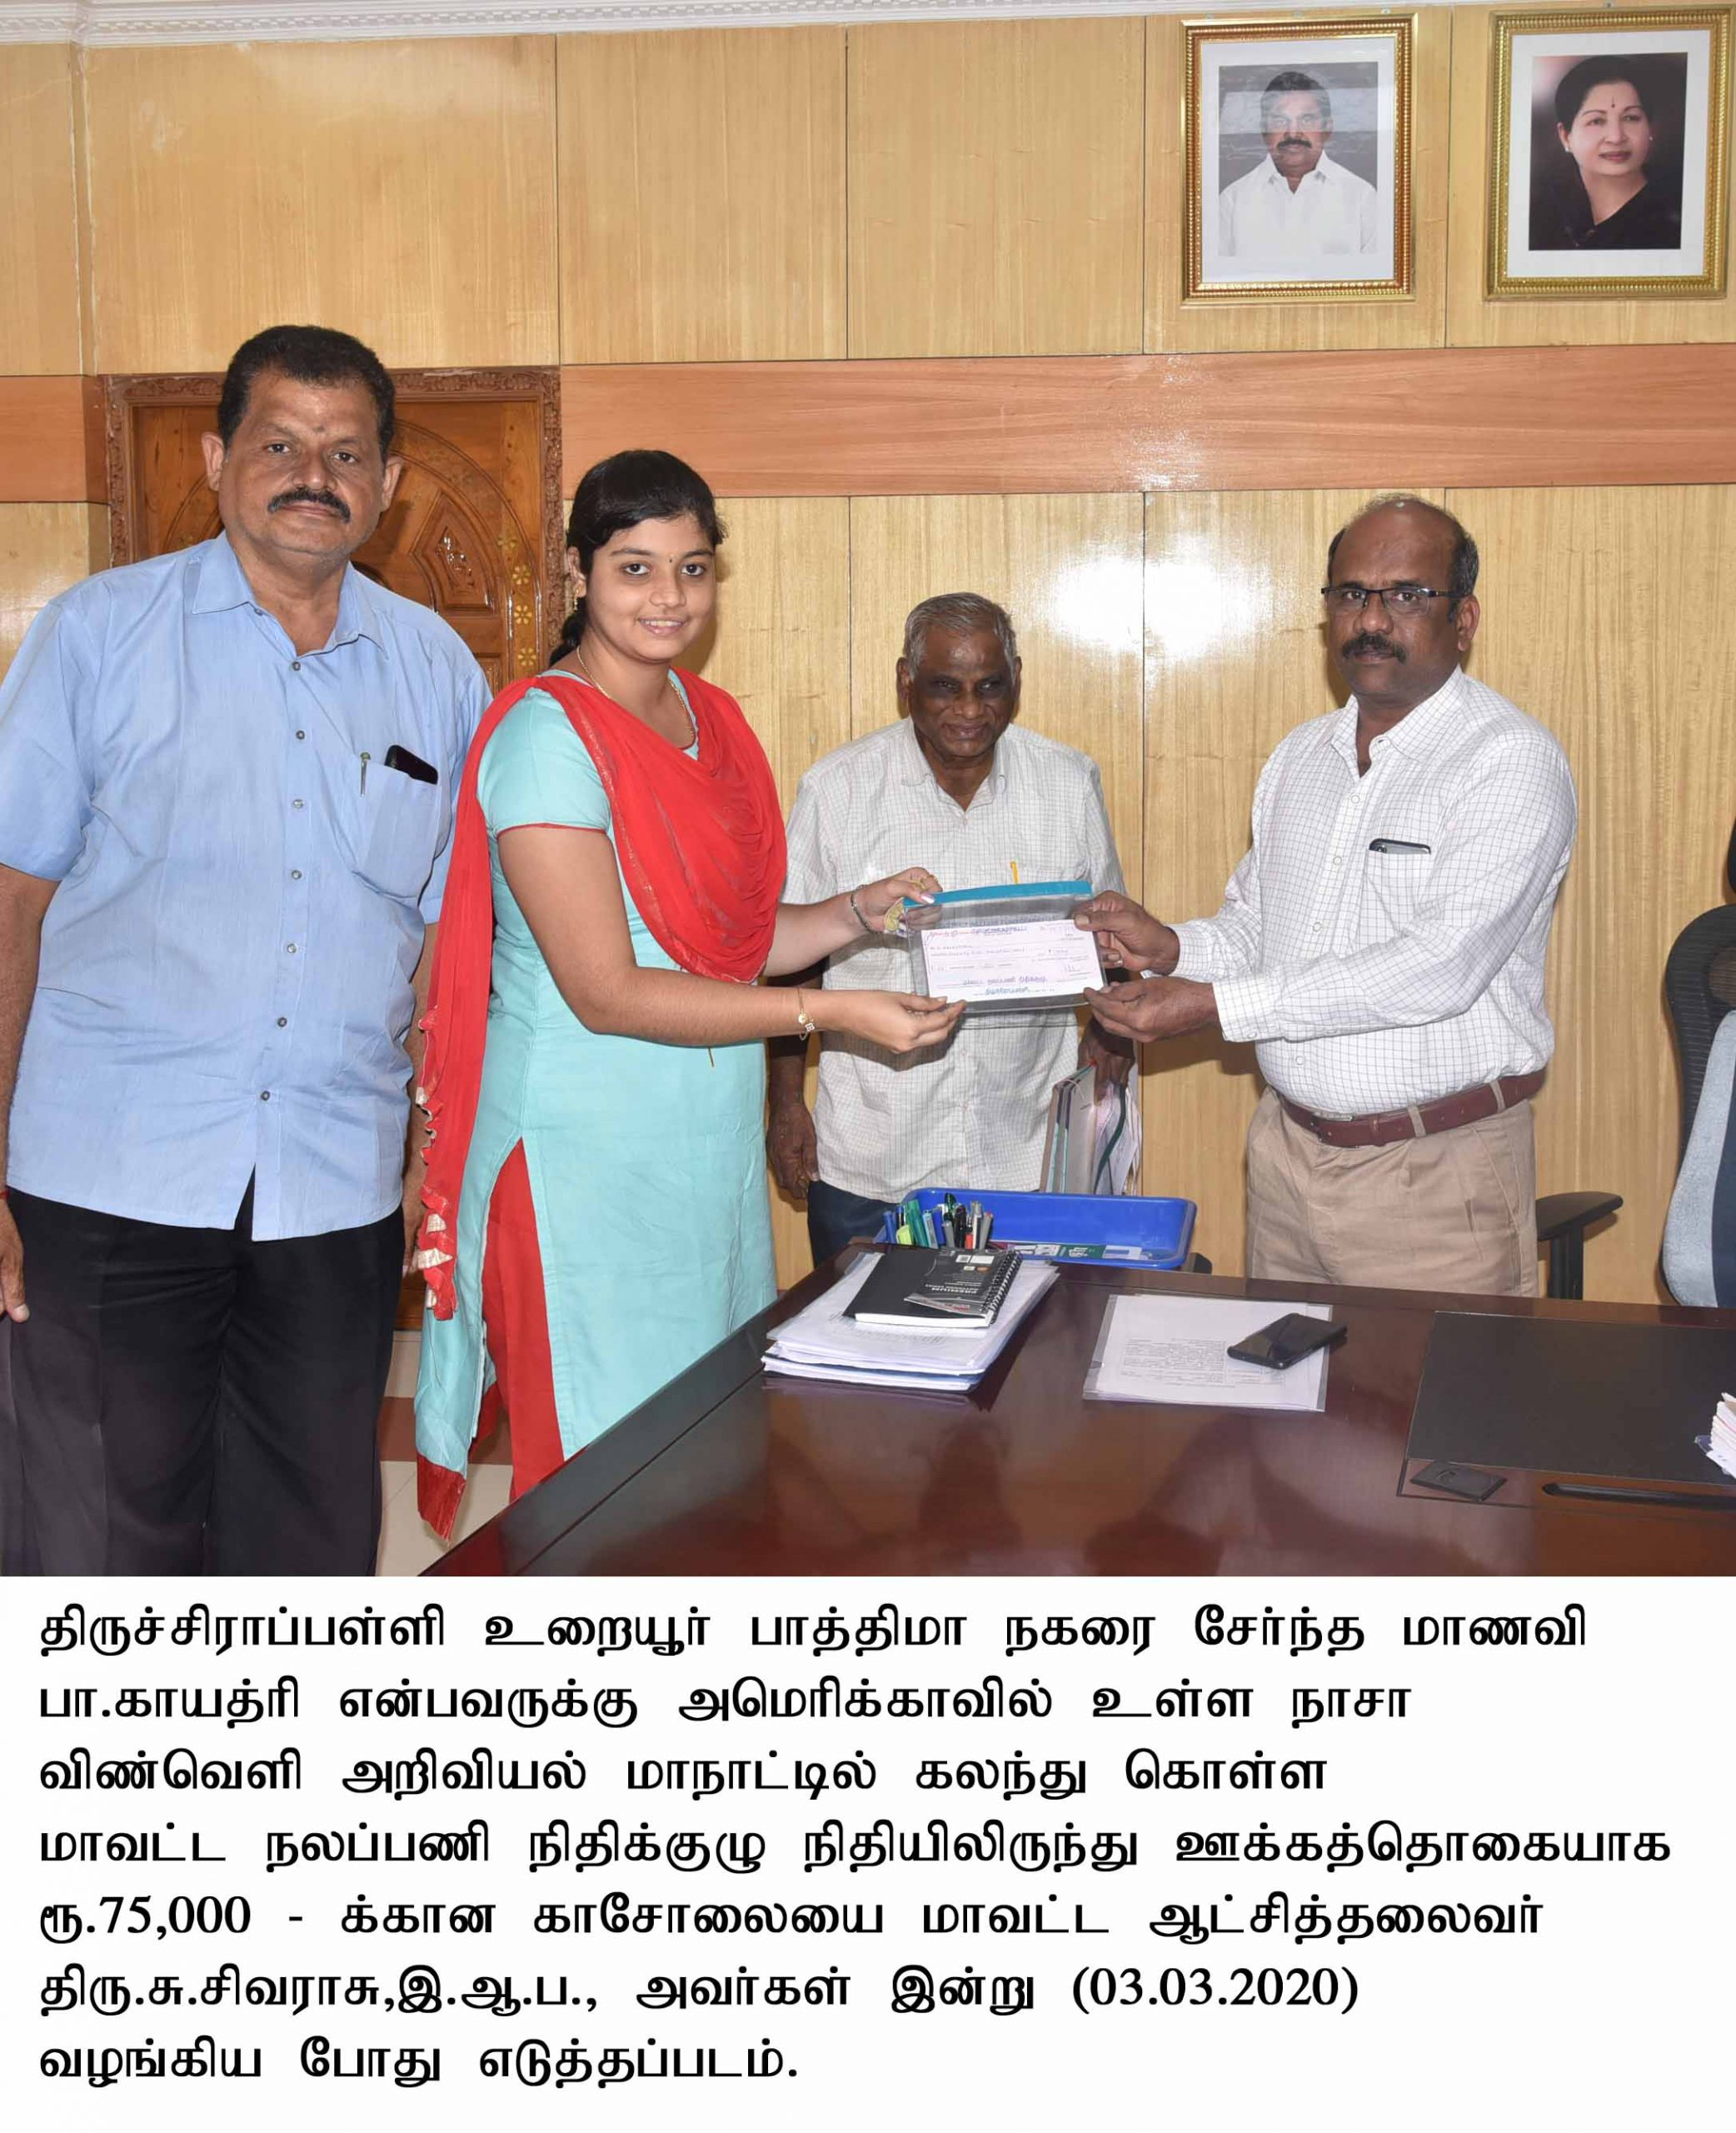 District collector extended financial Assistance to the Student from District Welfare fund to attend the NASA Science Conference